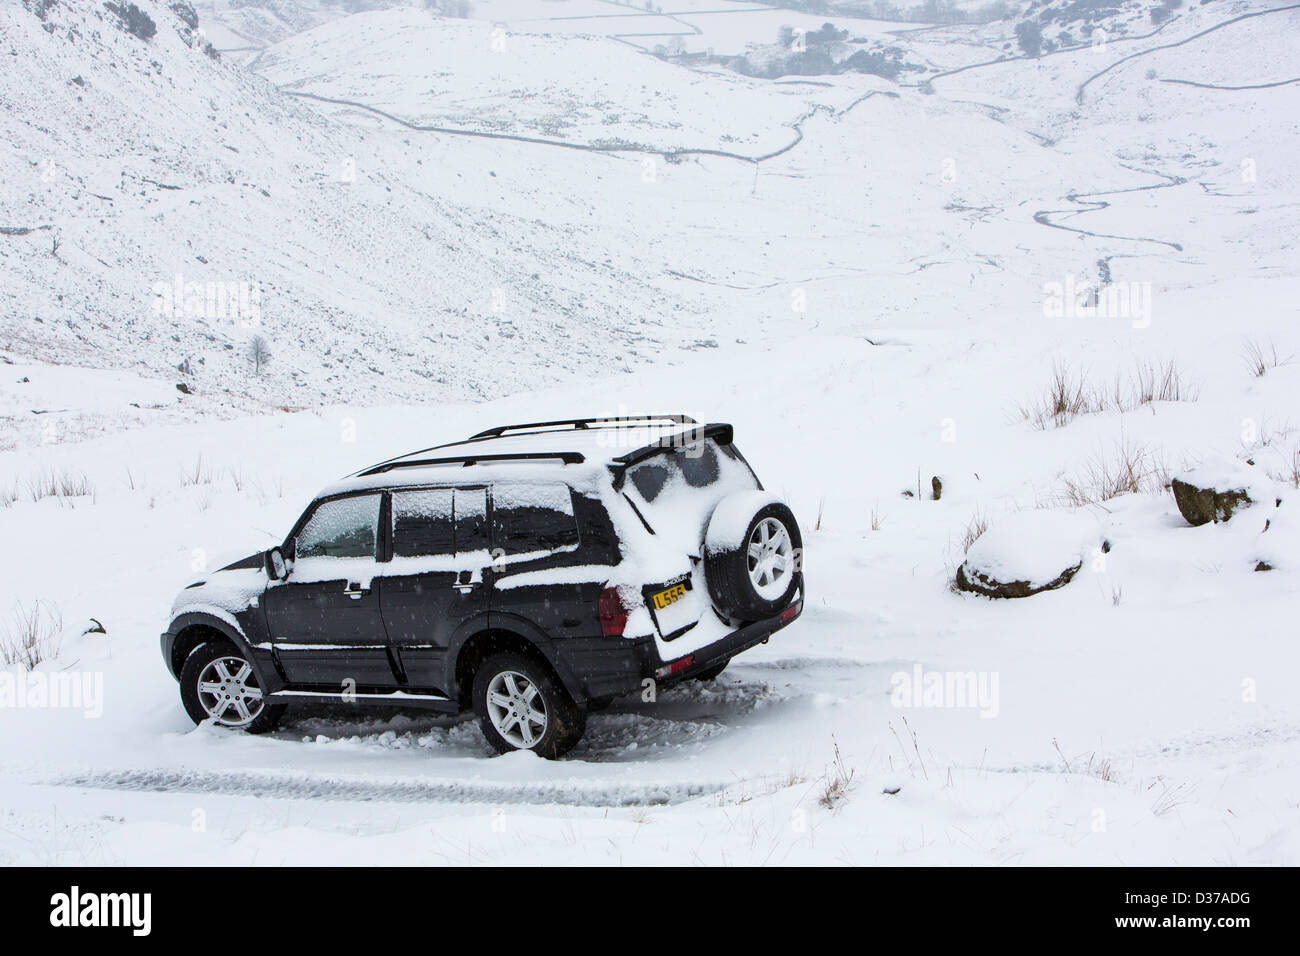 A chelsea tractor abandoned on Wrynose Pass after the fool driver attempted to drive over in Winter conditions - Stock Image